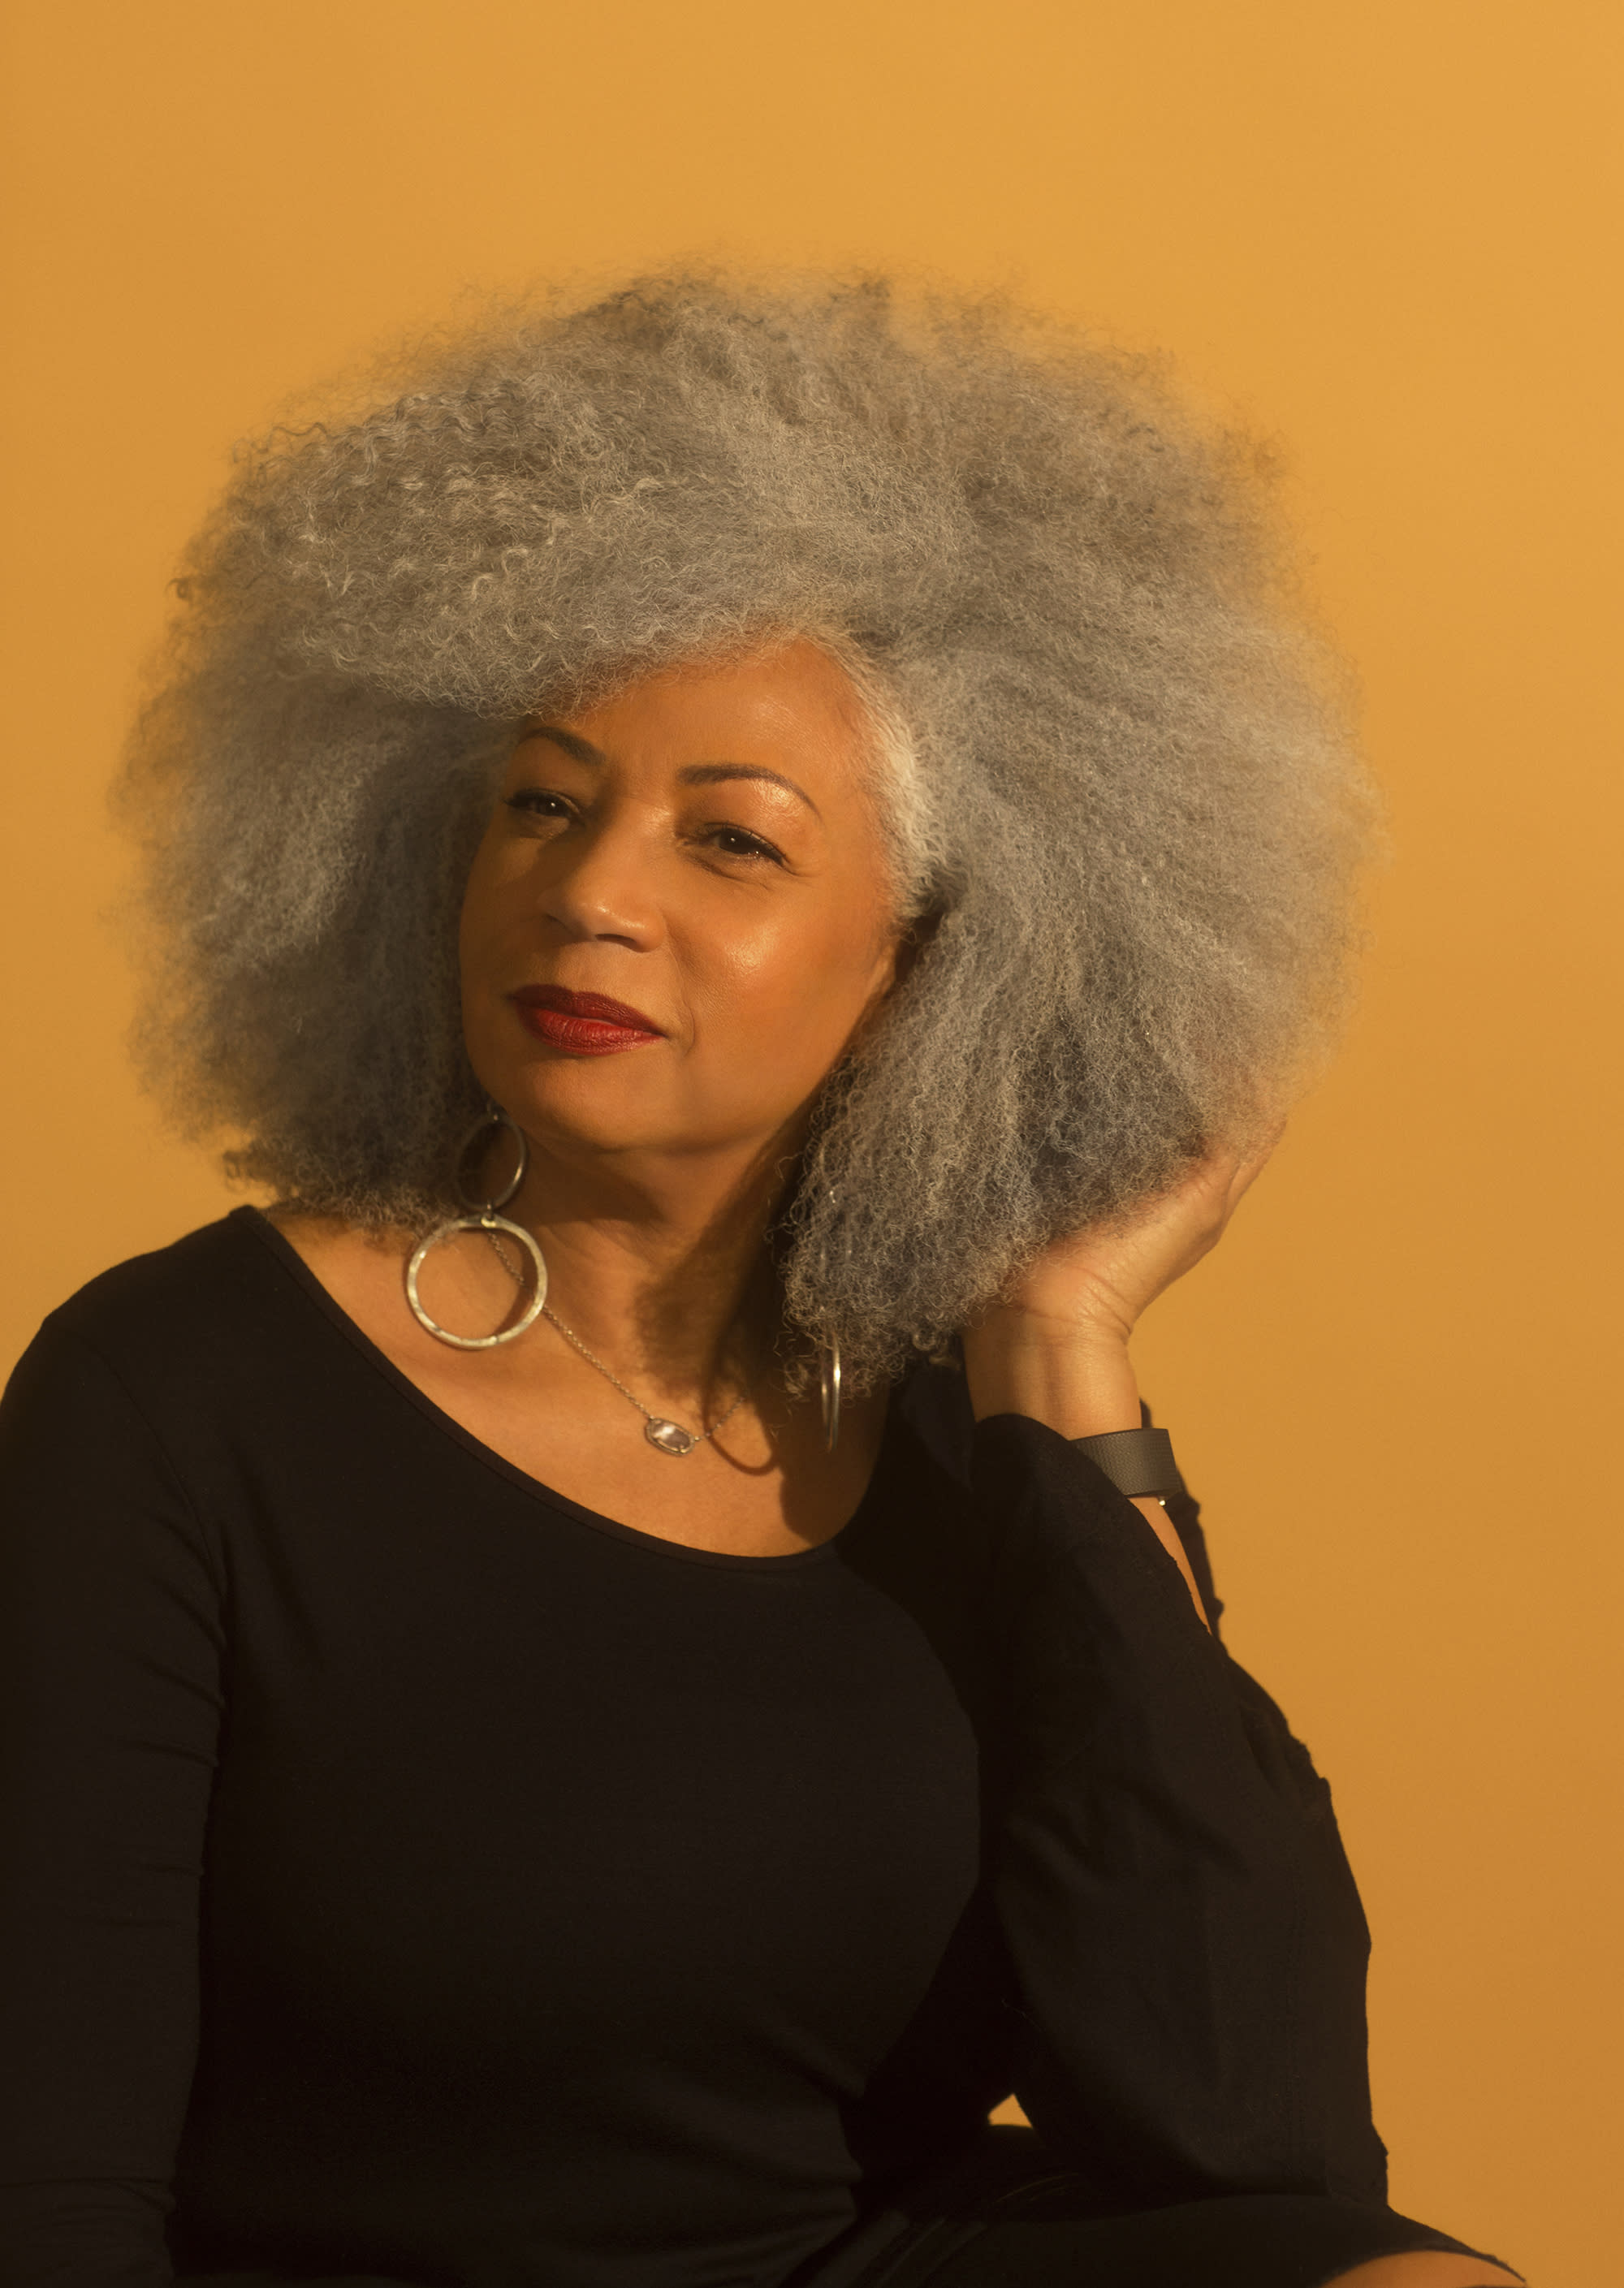 Mildred Bean, a life coach and social media influencer, is happy with her natural gray hair. (Photo: Natalia Mantini)